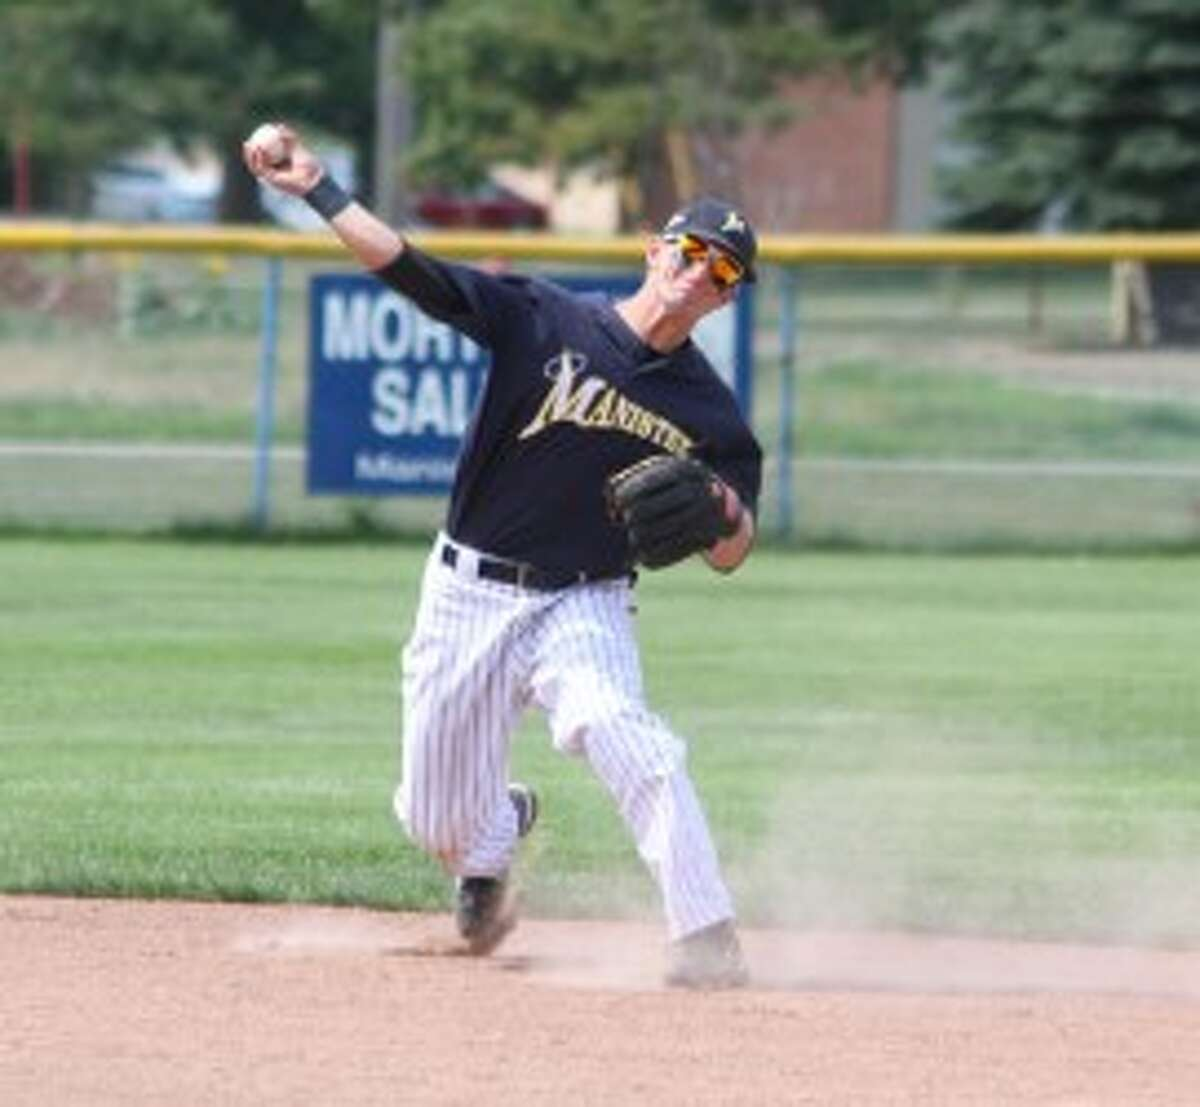 Saints second baseman Josh Ledford throws to first for an out in the nightcap of Sunday's sweep of Coleman in Manistee's regular season finale at Rietz Park. (Matt Wenzel/News Advocate)